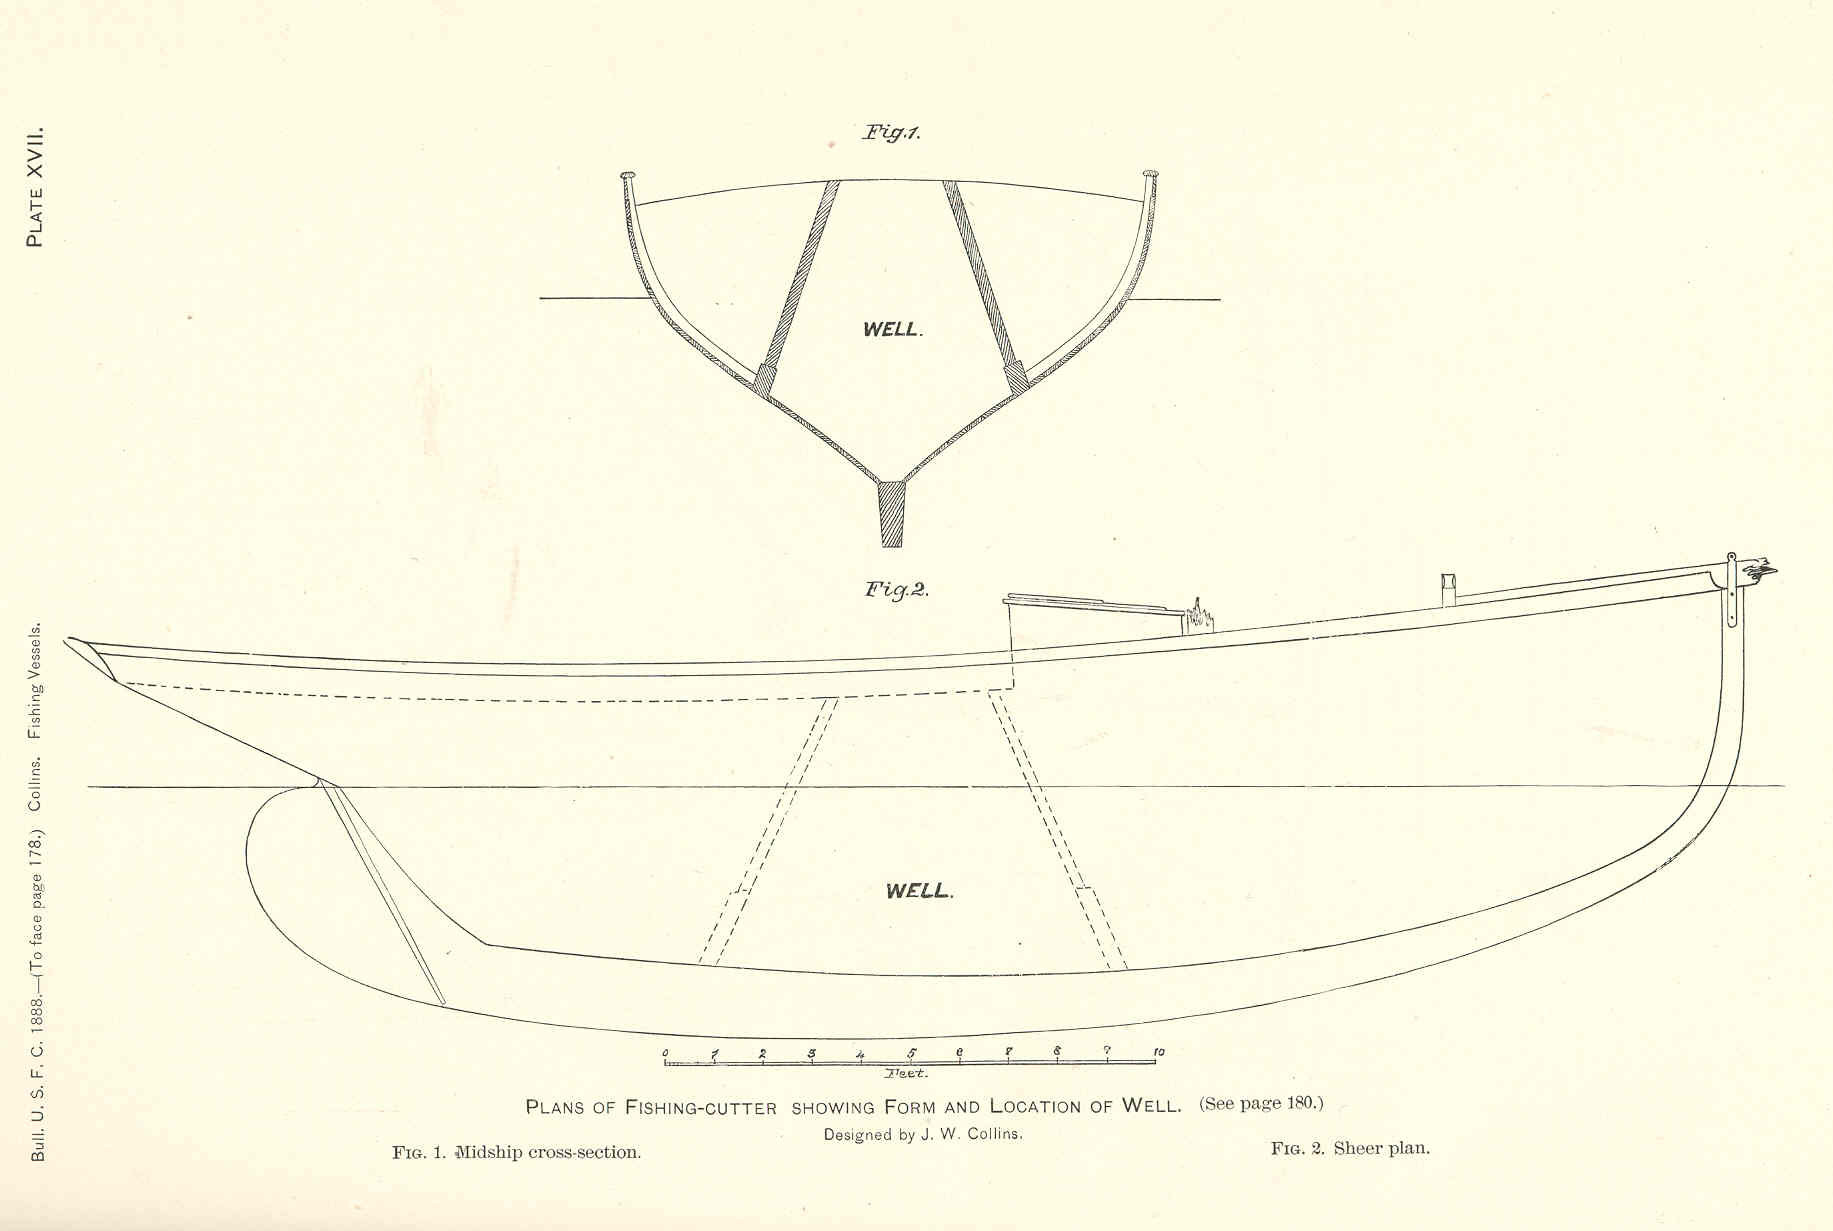 Filefmib 37853 Plans Of Fishing Cutter Showing Form And Location Of